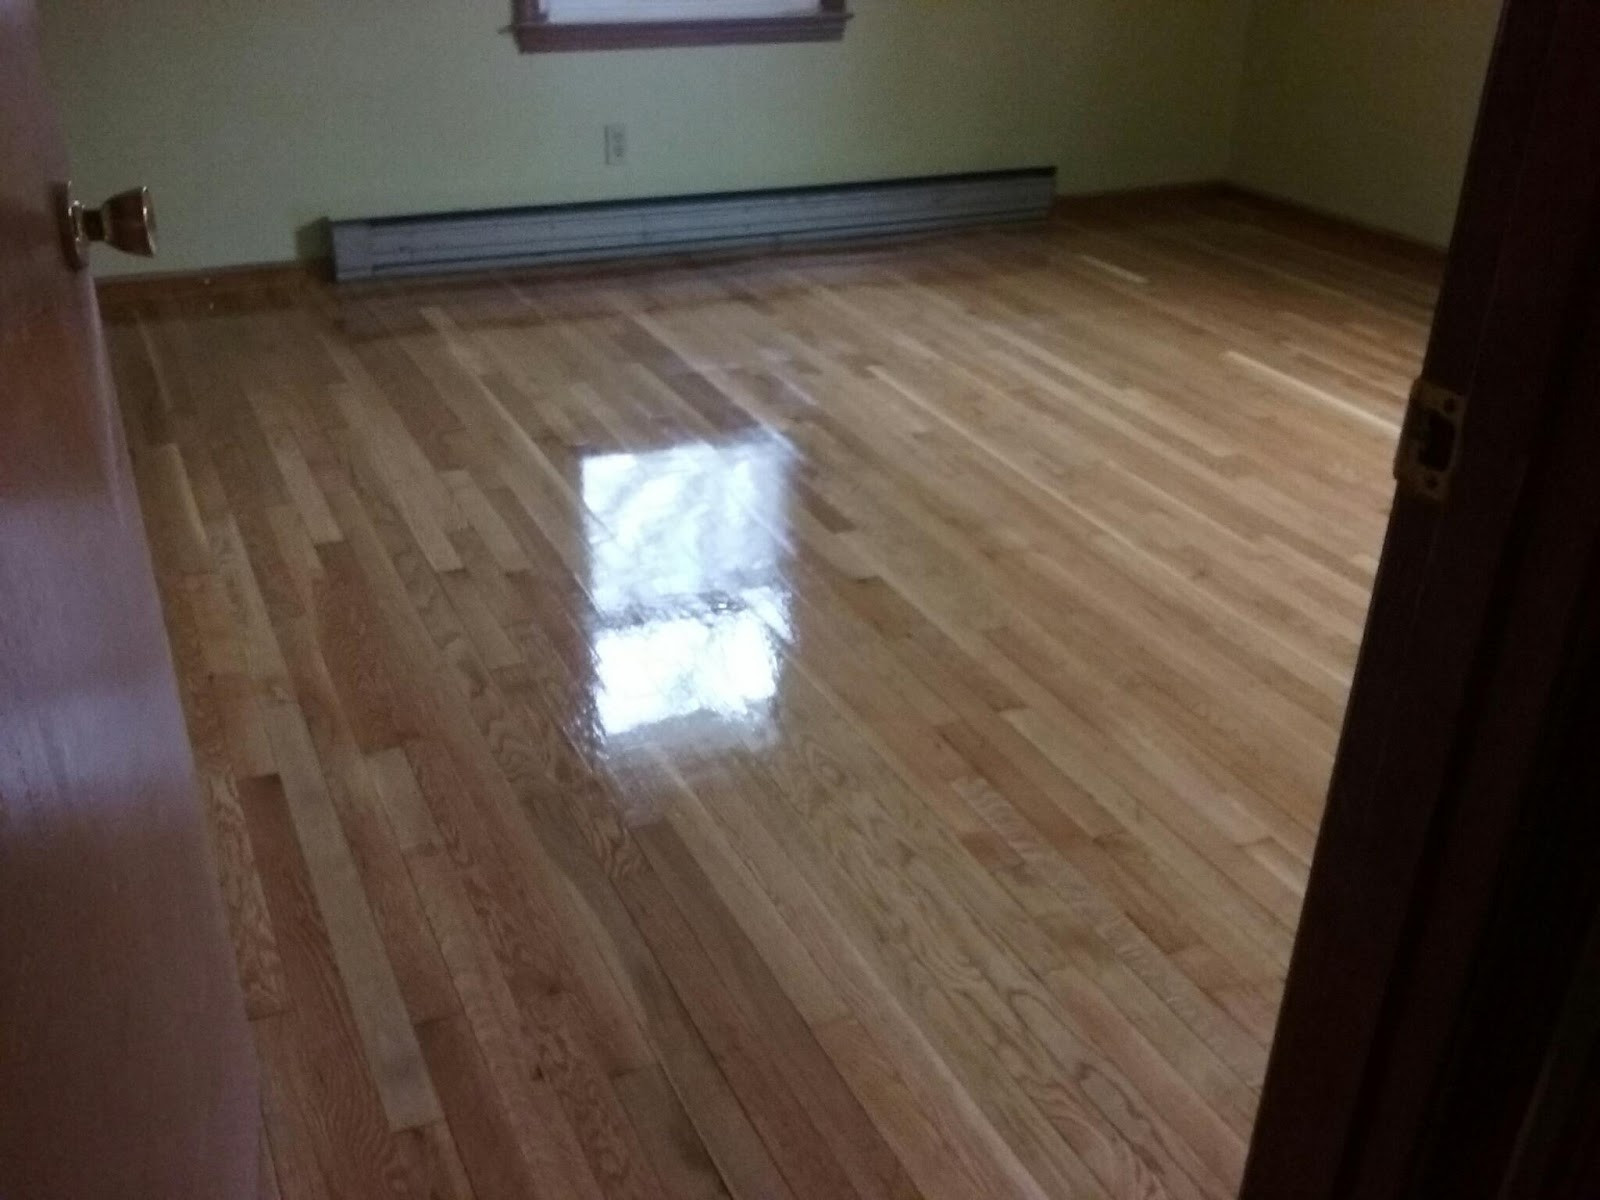 hardwood floor refinishing worcester ma of carolis flooring for these floors really needed sanding me and my team went there a gave this wood floor an improved view customer loves them because now they look like brand